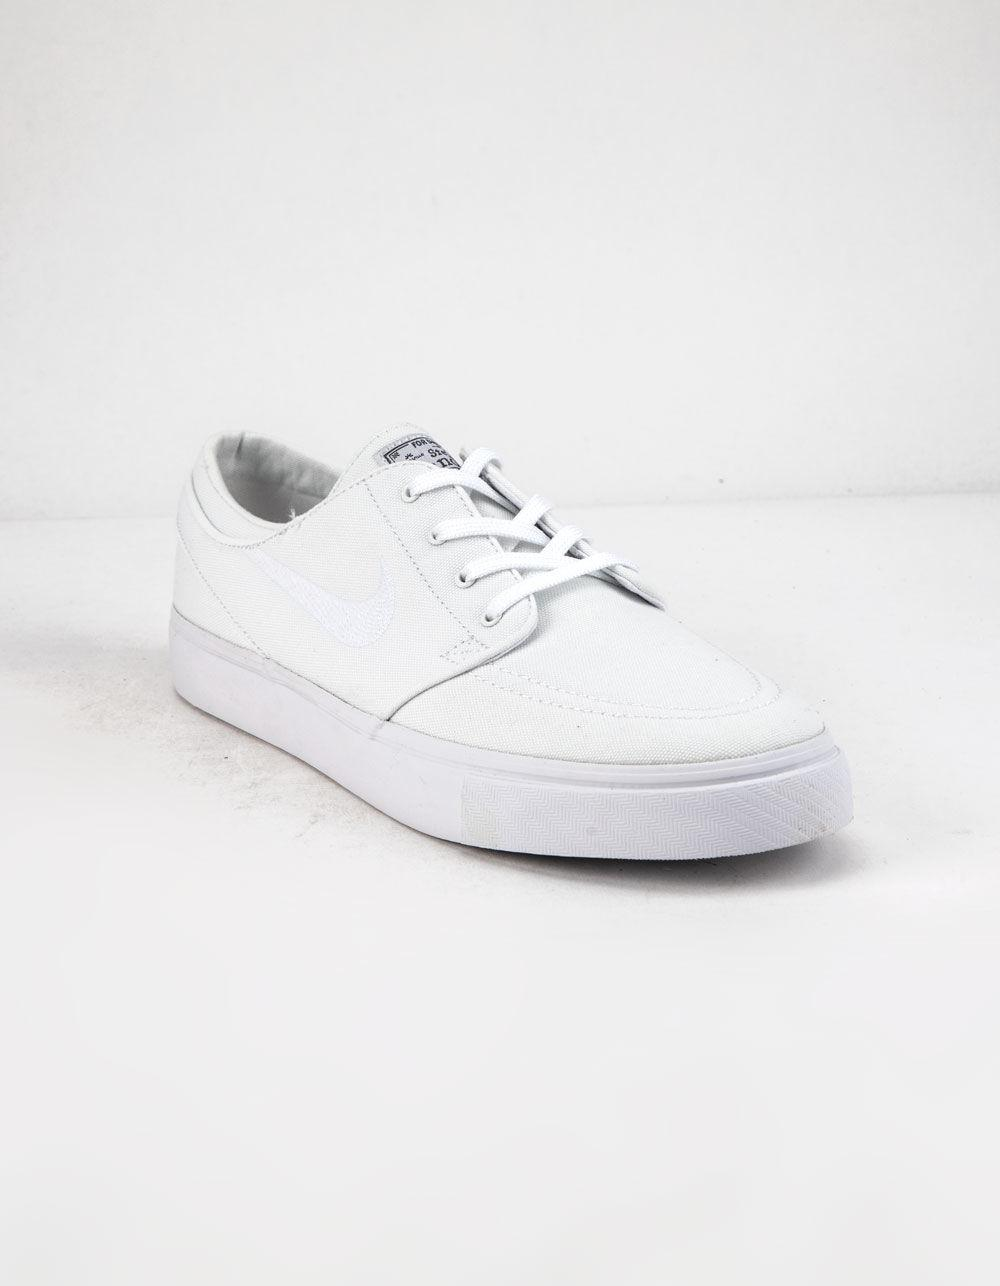 adeb5f0e9e40 Lyst - Nike Sb Zoom Janoski Canvas Rm White Mens Shoes in White for Men